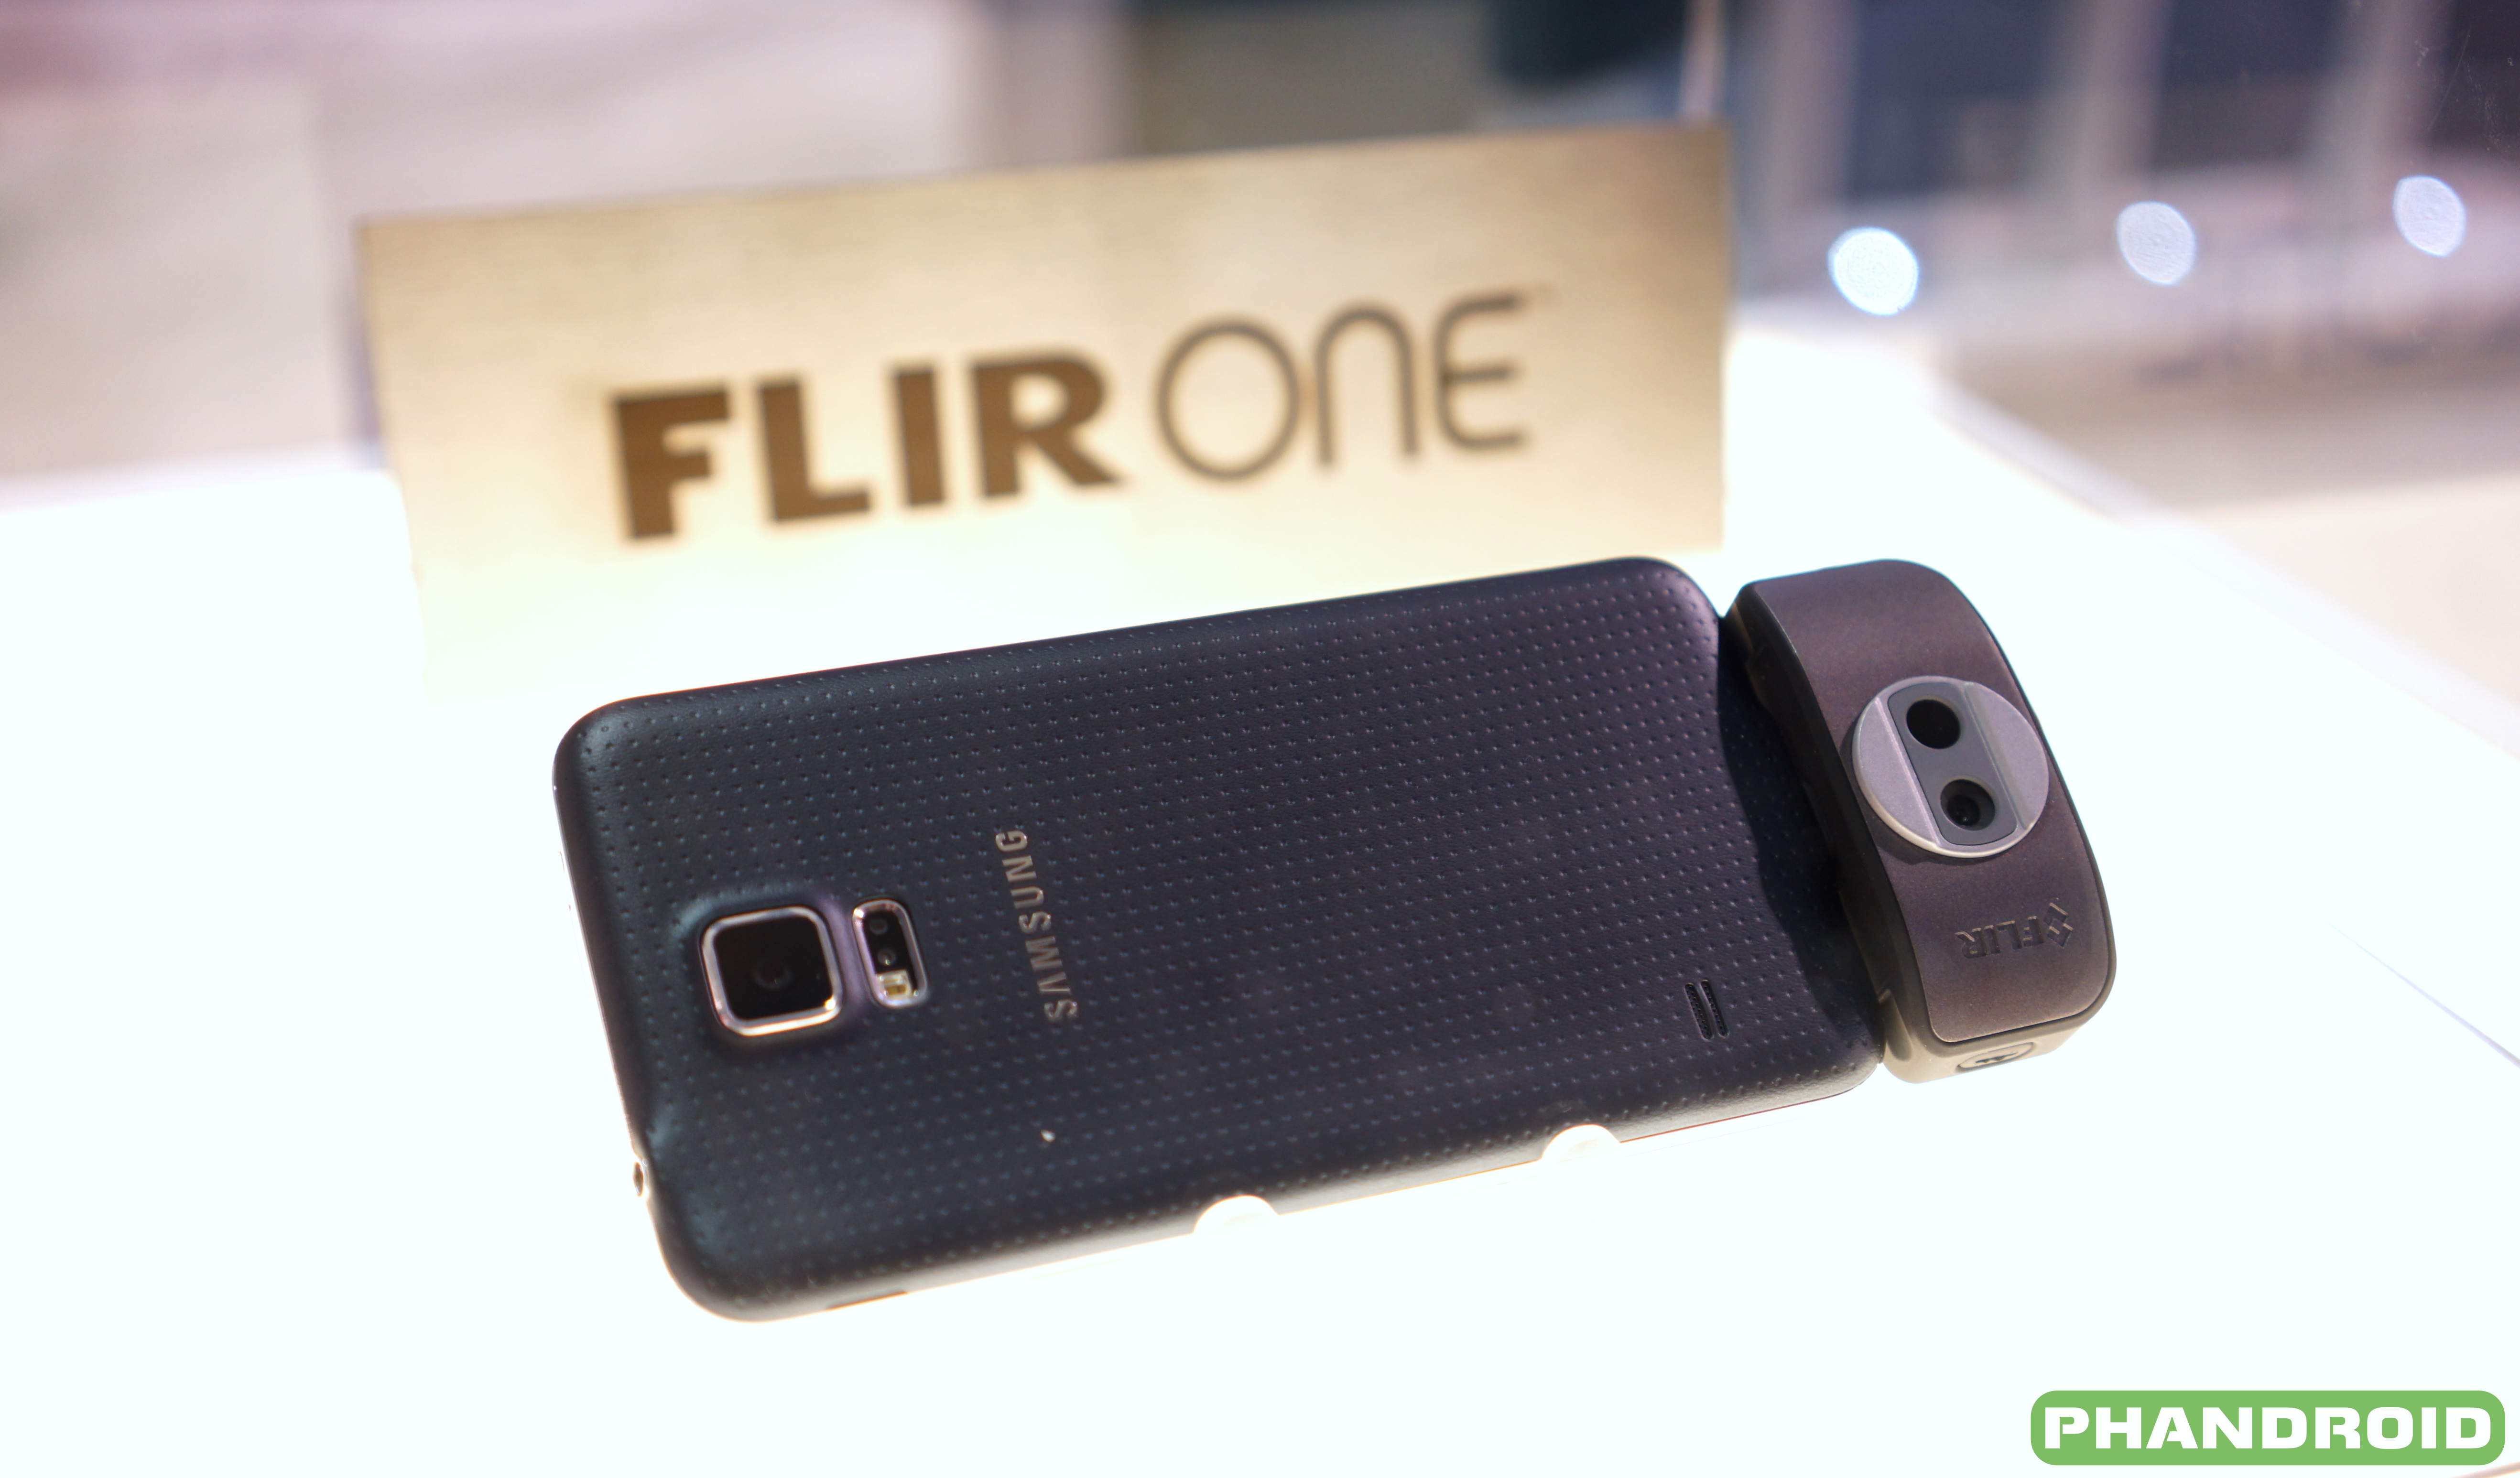 Flir One Dongle Lets You See Through The Eyes Of A Predator